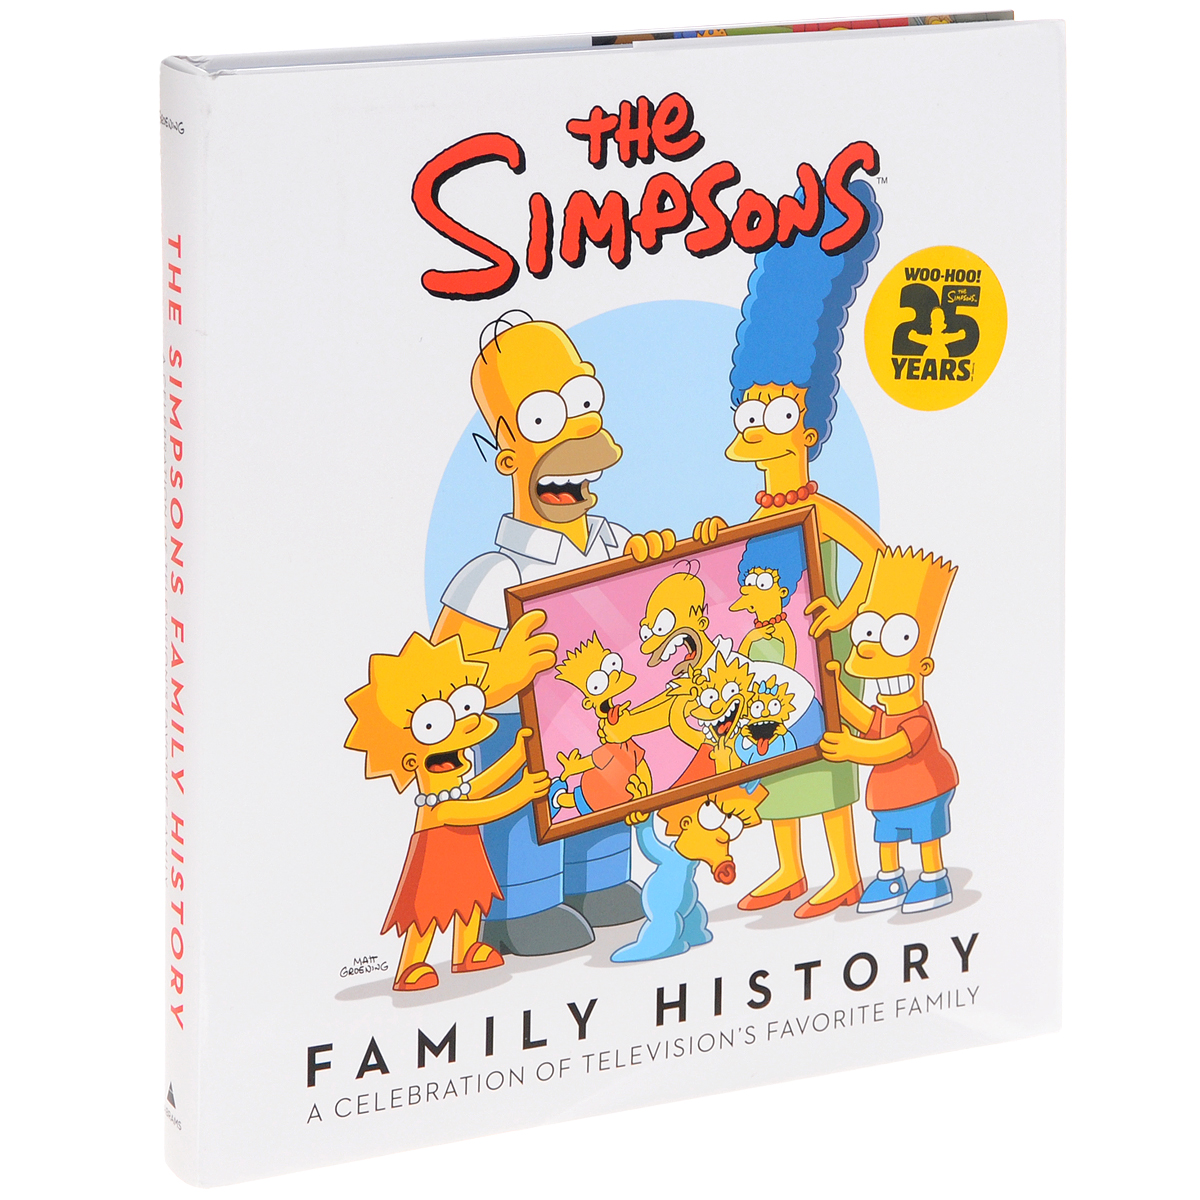 The Simpsons: Family History the family way